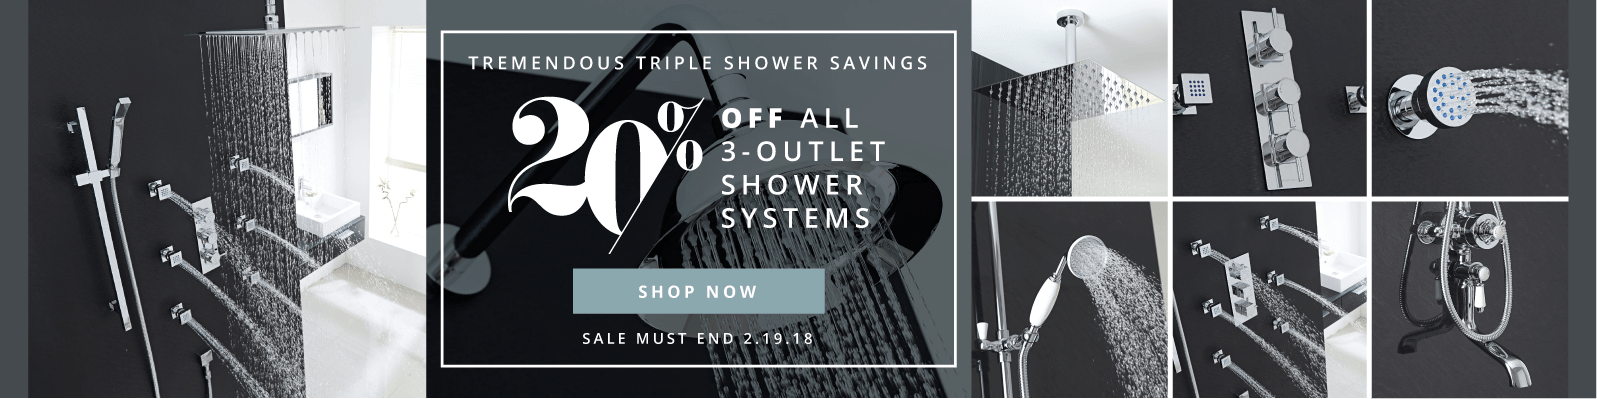 Tremendous Triple Shower Savings 20% off all 3-outlet shower systems Sale Must End 2.19.18